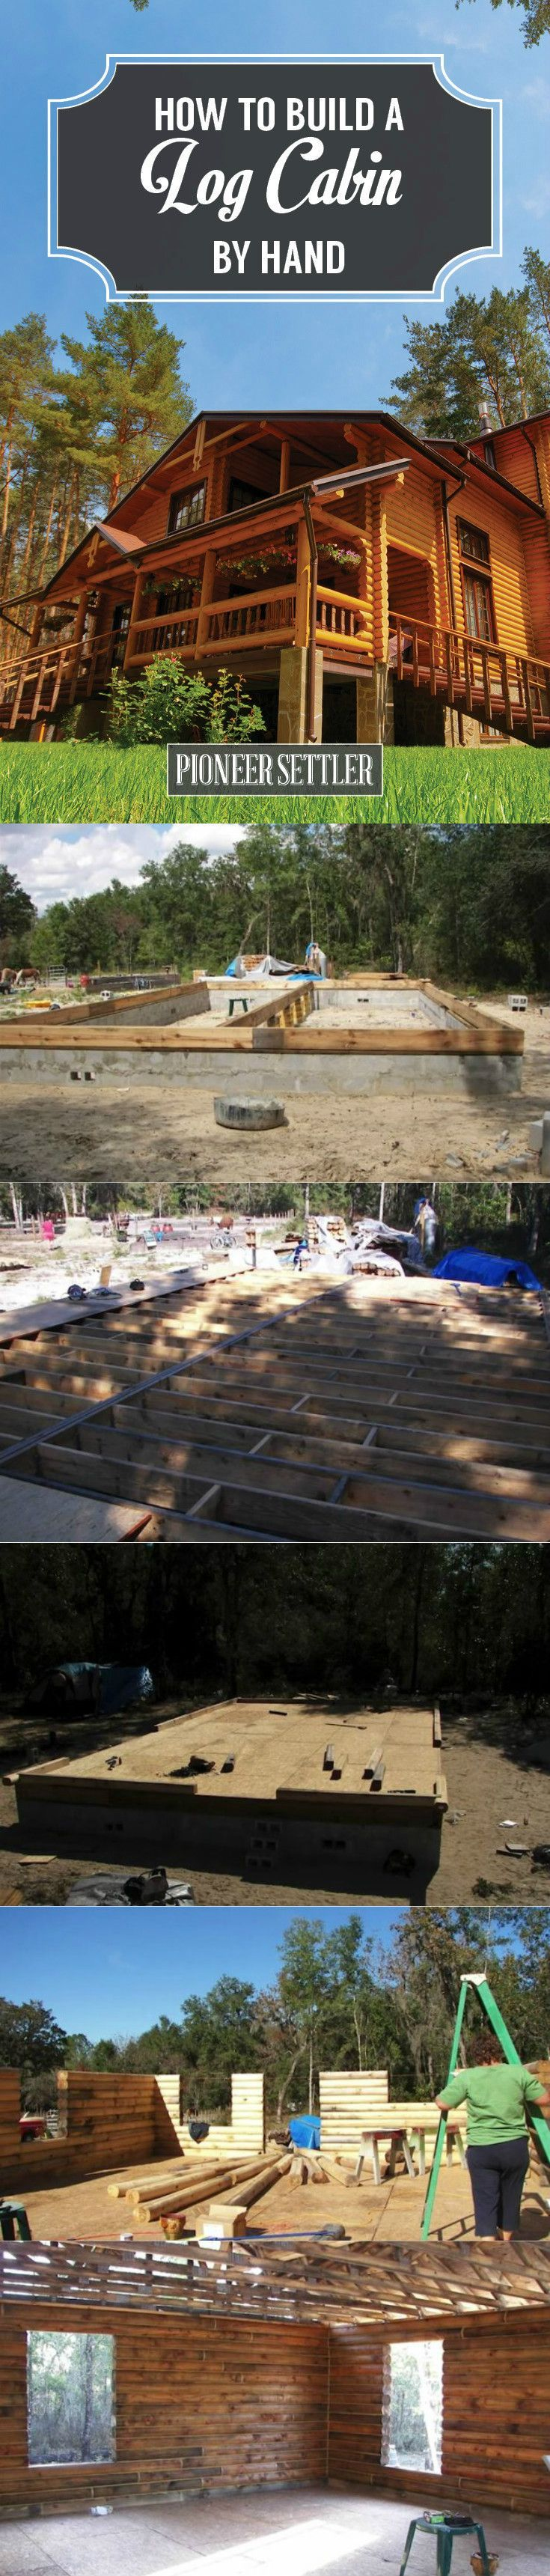 How to Build a Log Cabin By Hand - Homesteading Ideas   Step By Step Tutorial by Pioneer Settler at http://pioneersettler.com/build-log-cabin-by-hand/